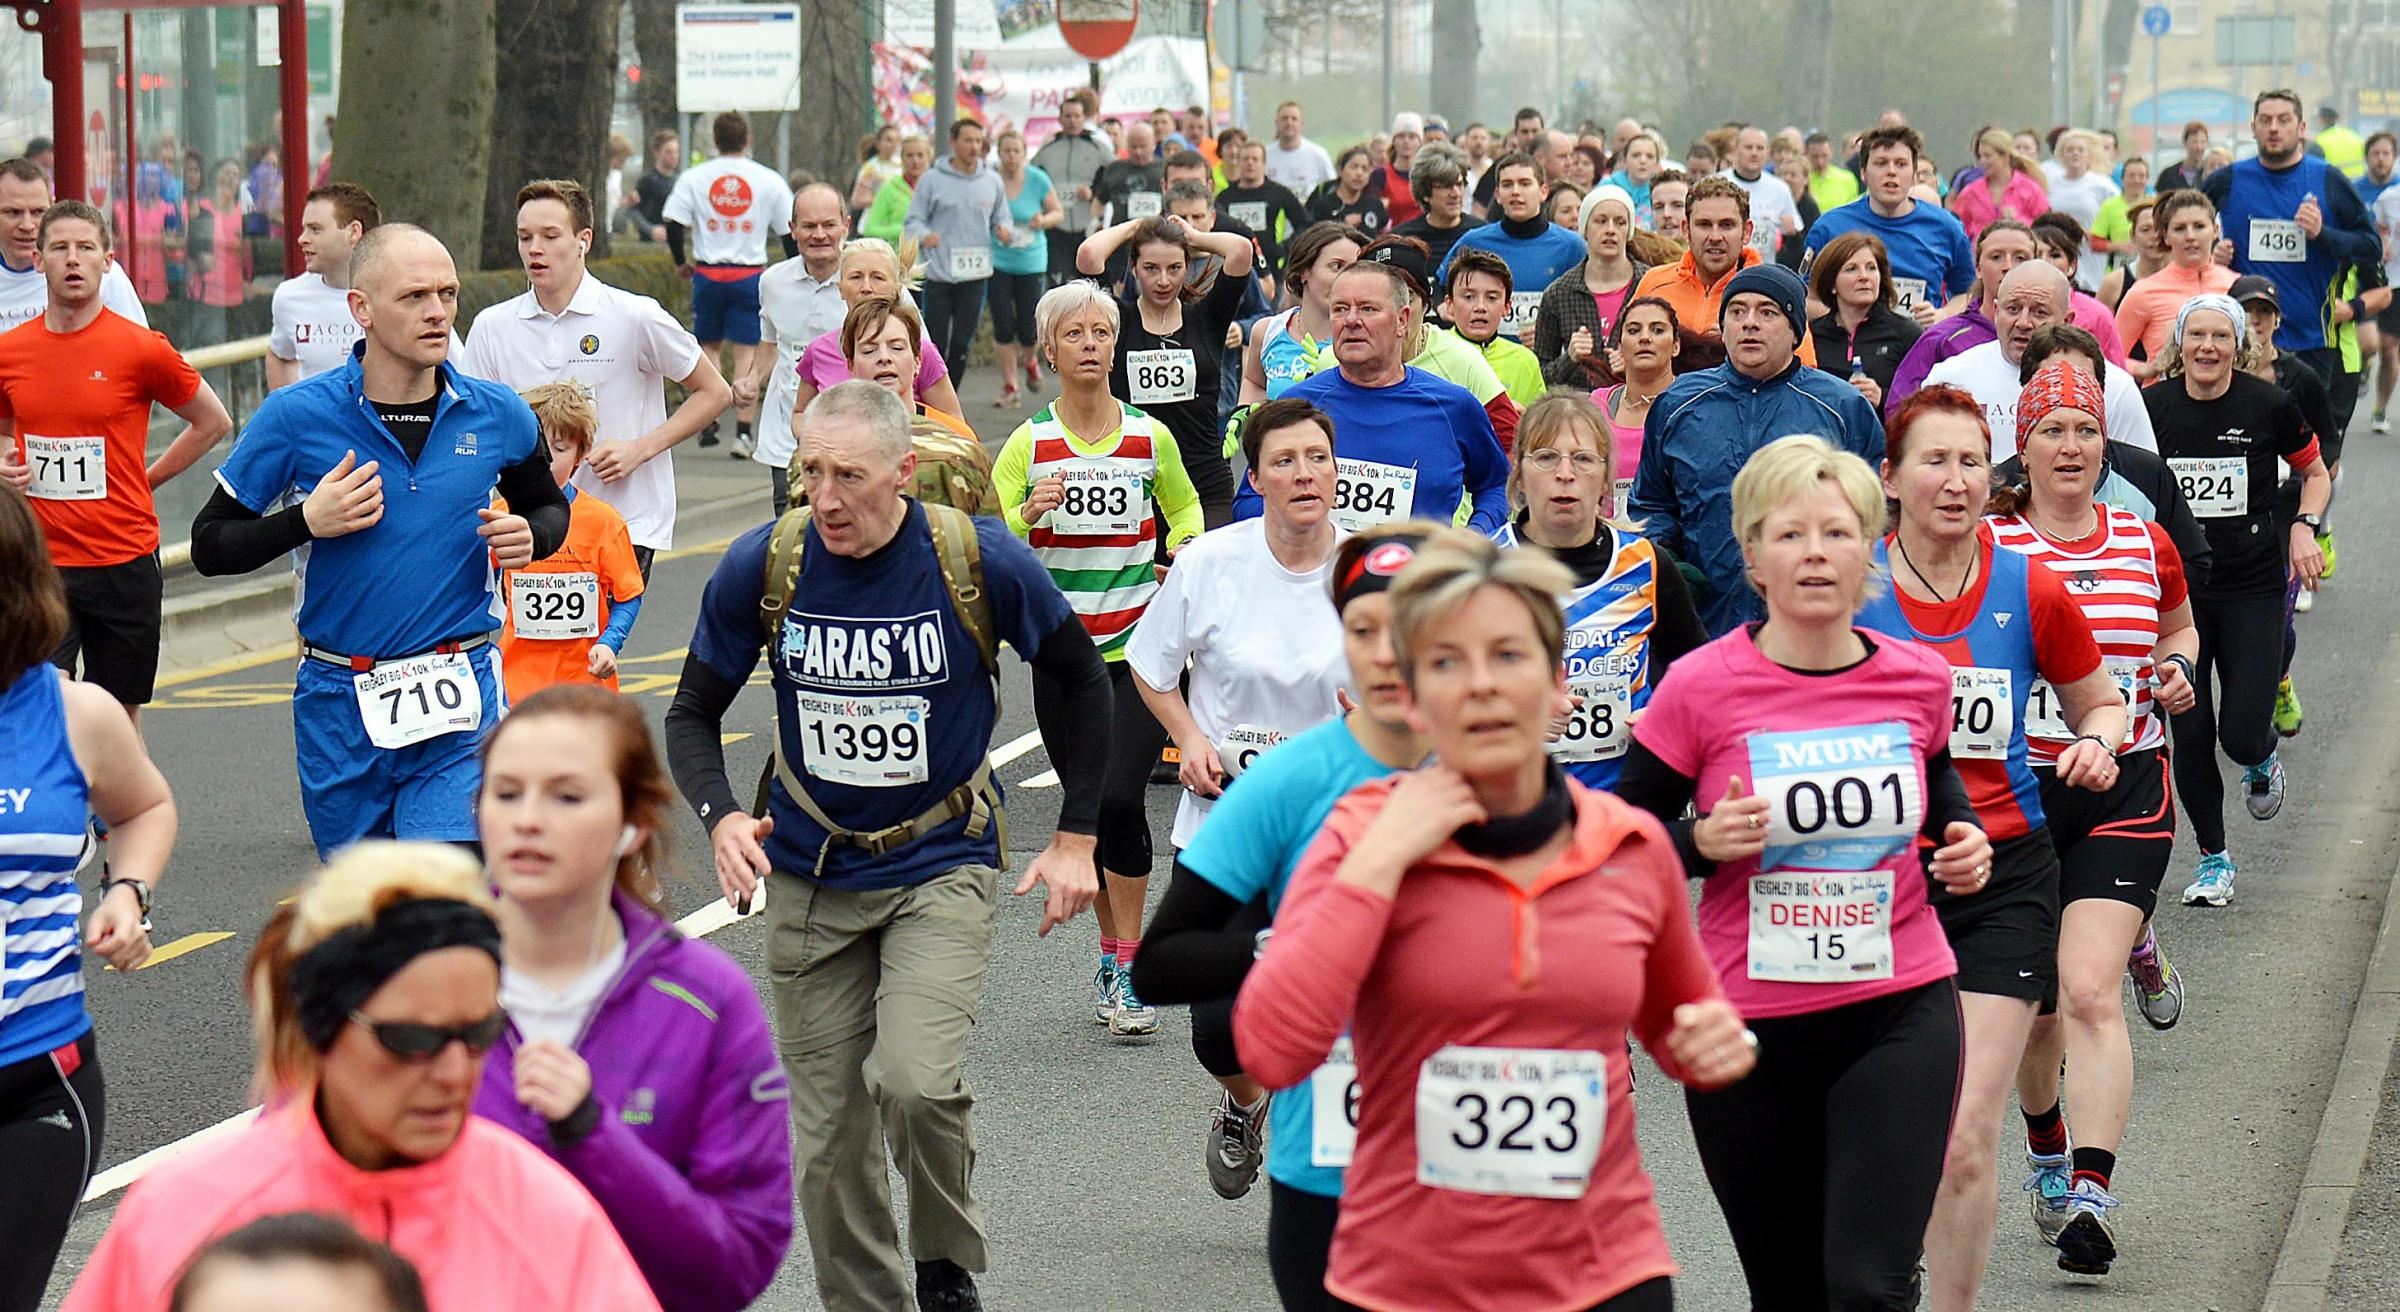 More than 1,300 runners took part in today's race